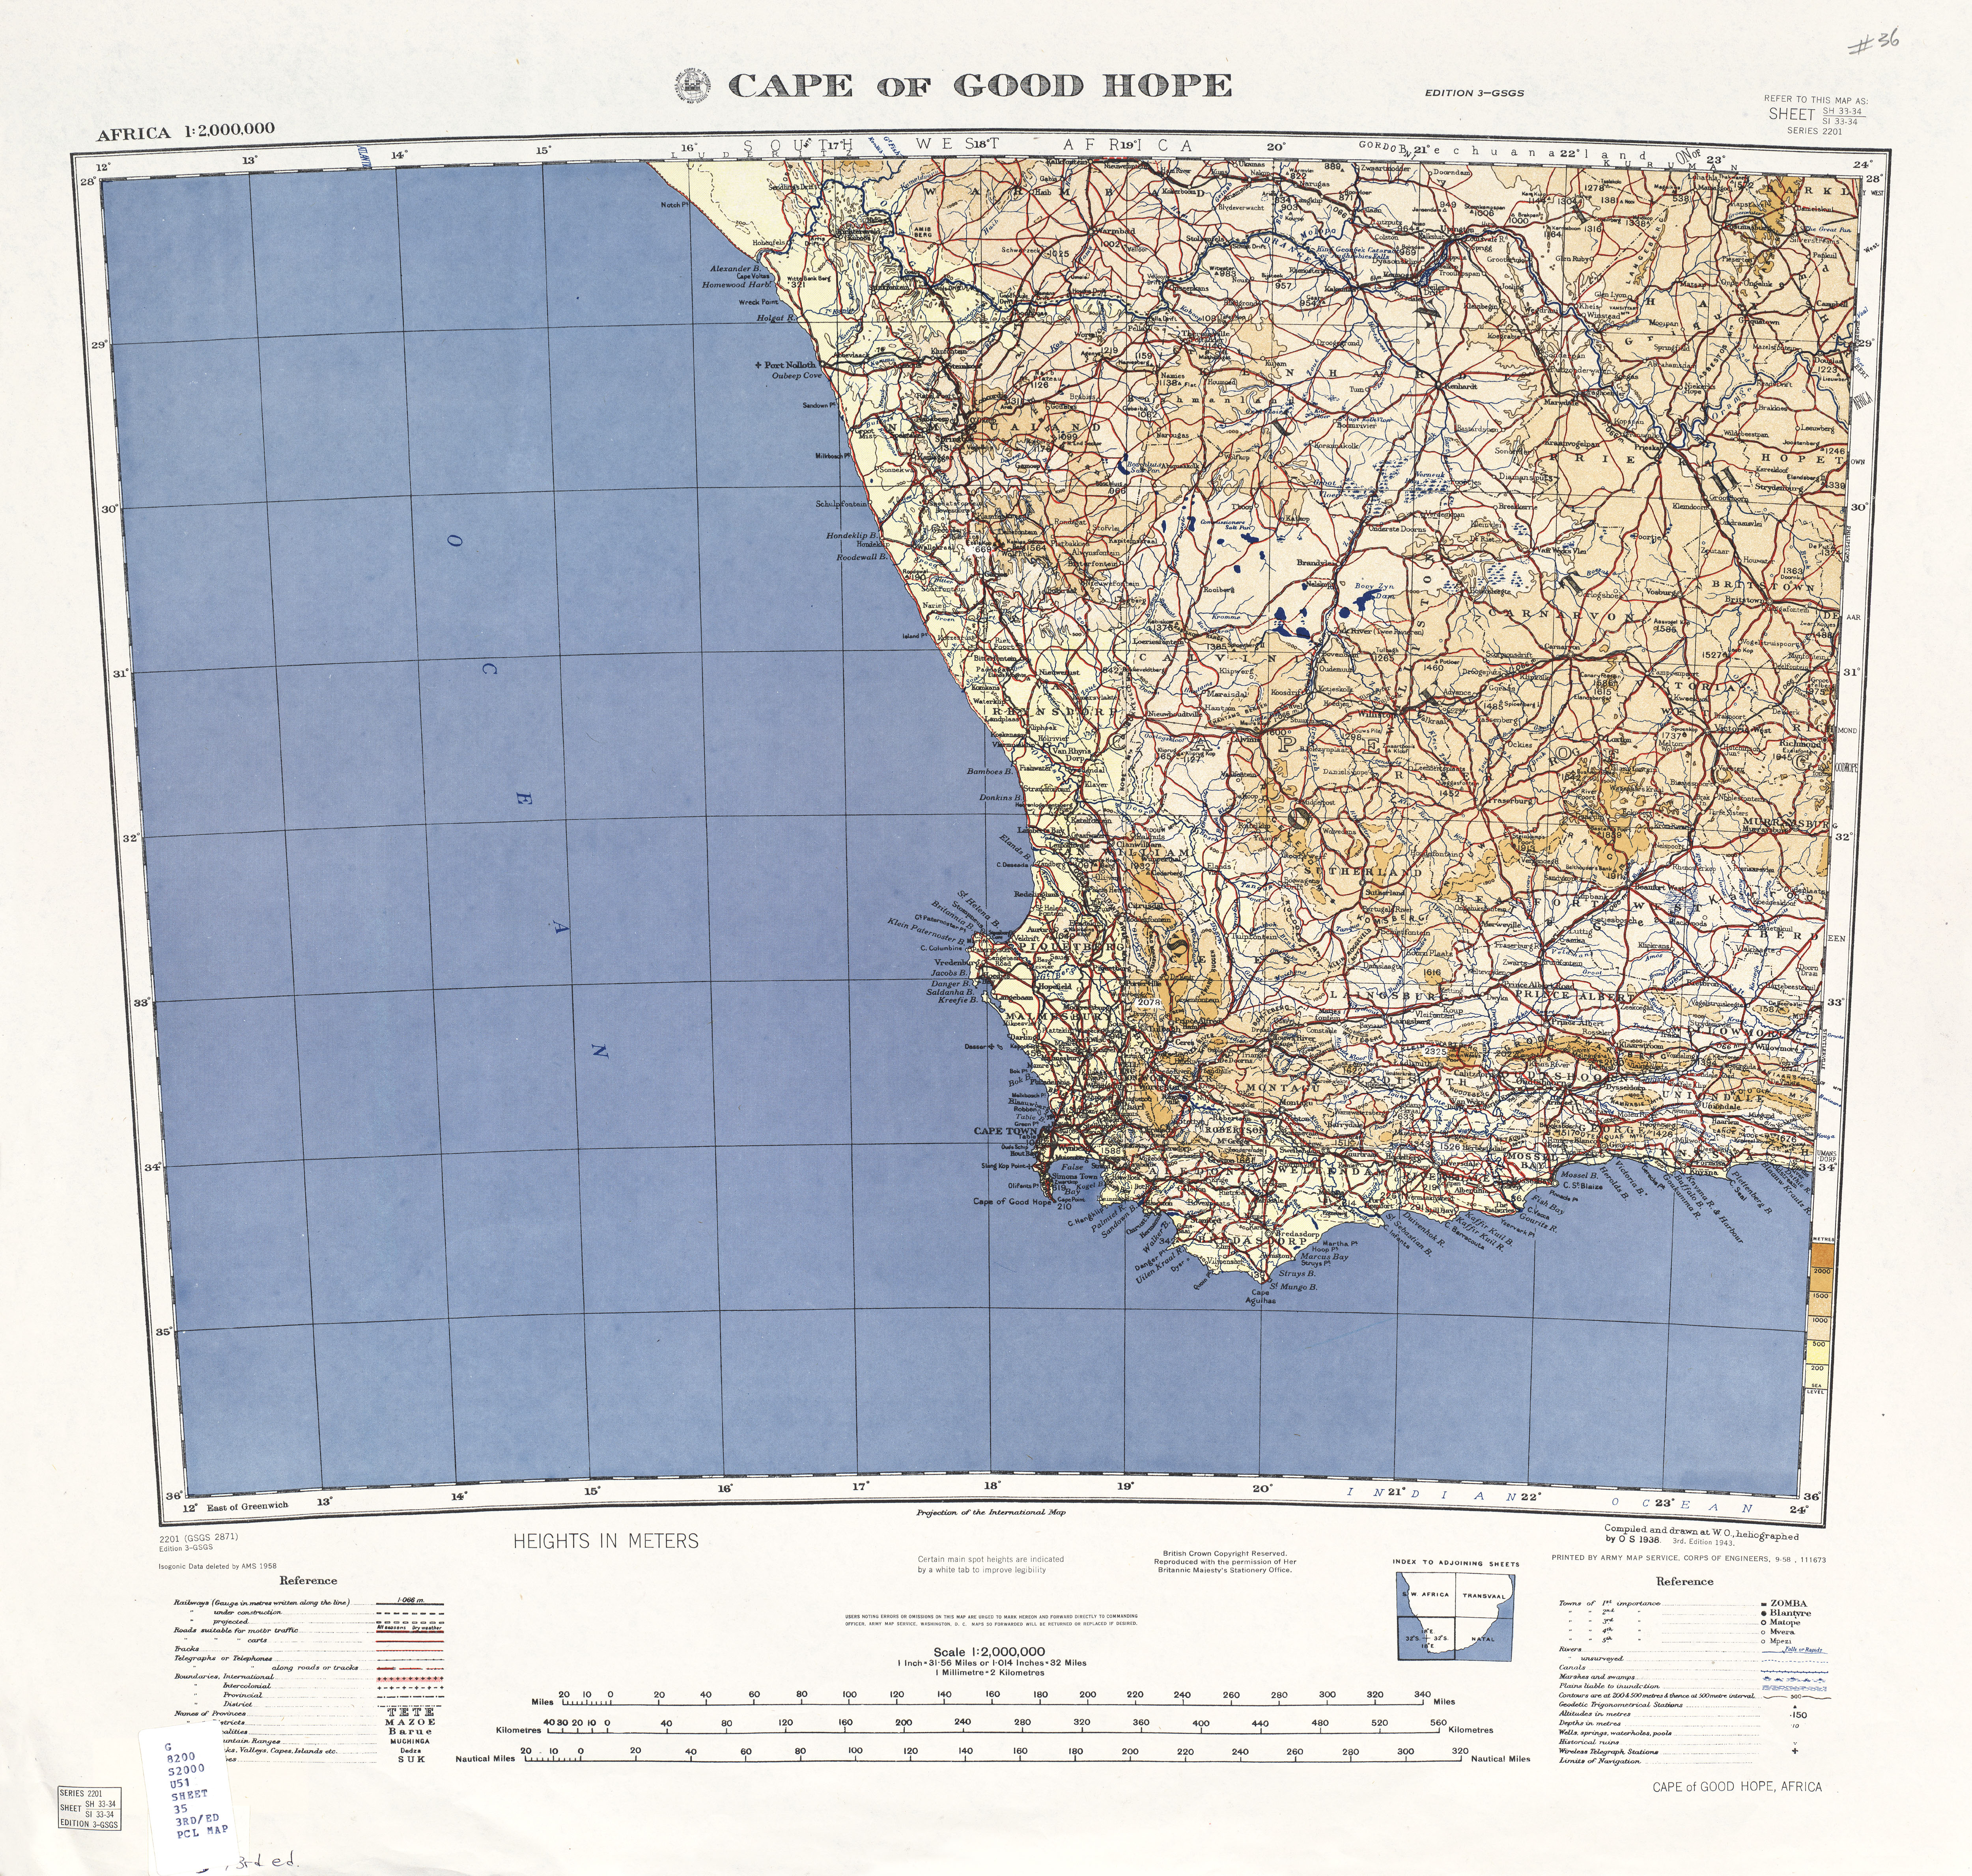 Cape of Good Hope Topographic Sheet Map, Africa 1958